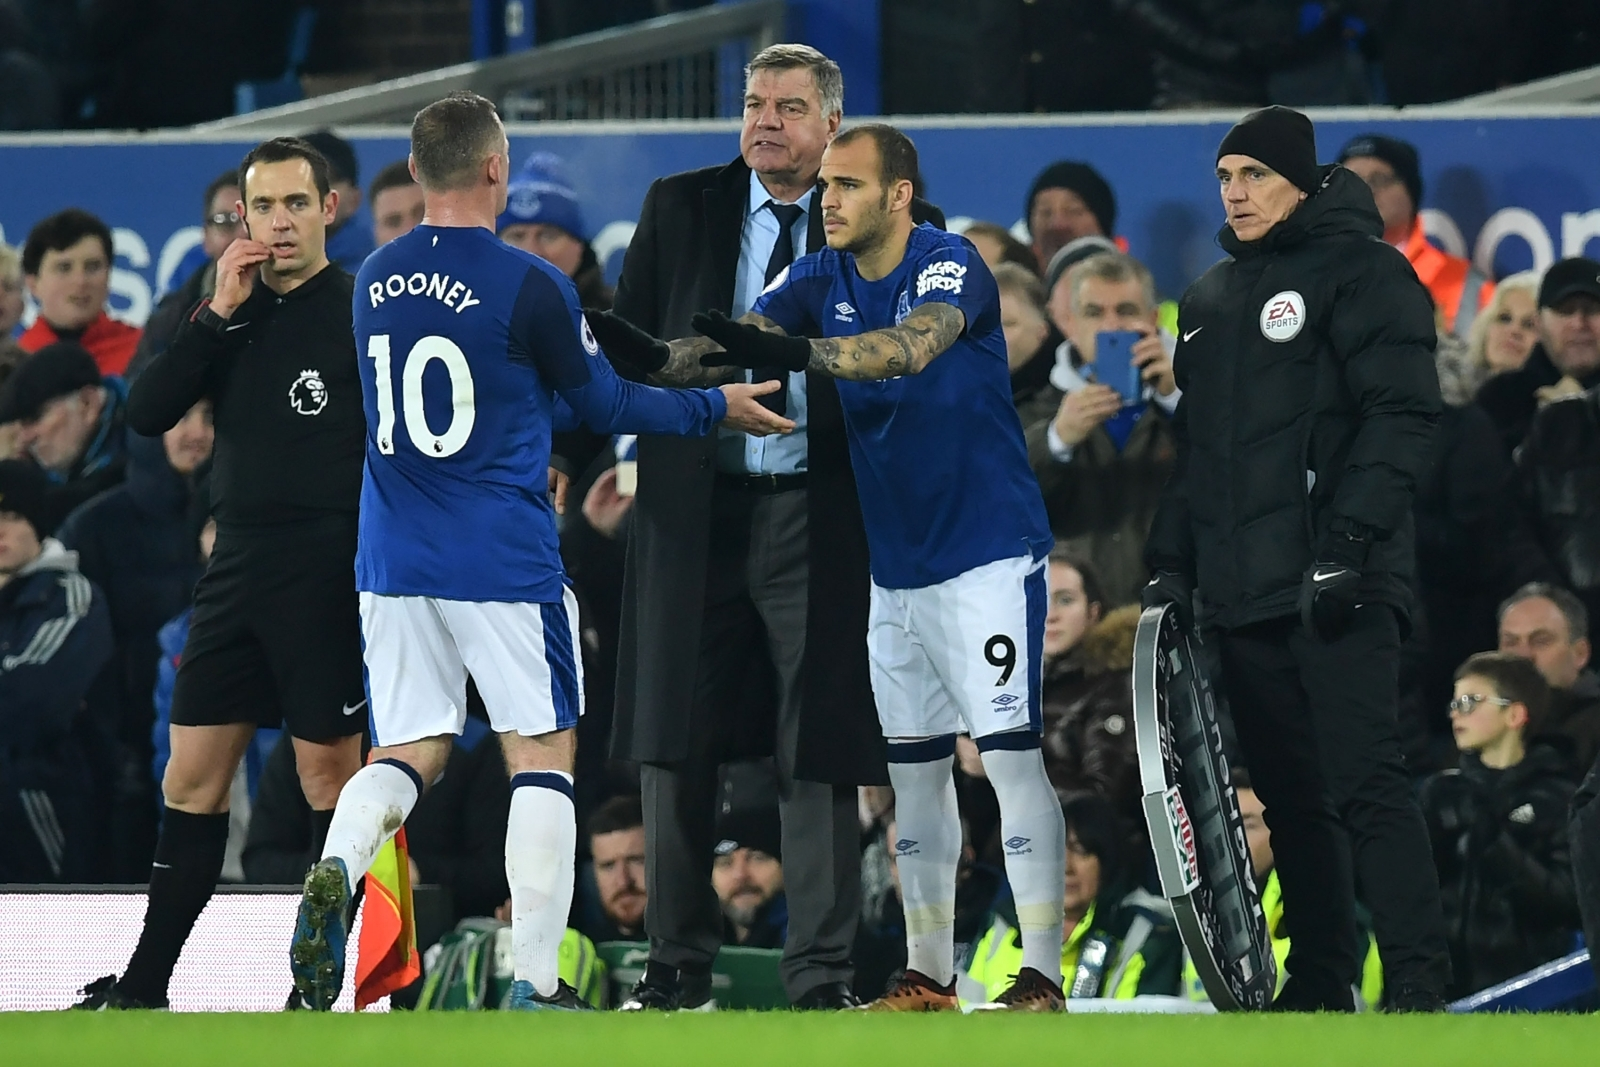 Wayne Rooney, Sam Allardyce and Sandro Ramirez